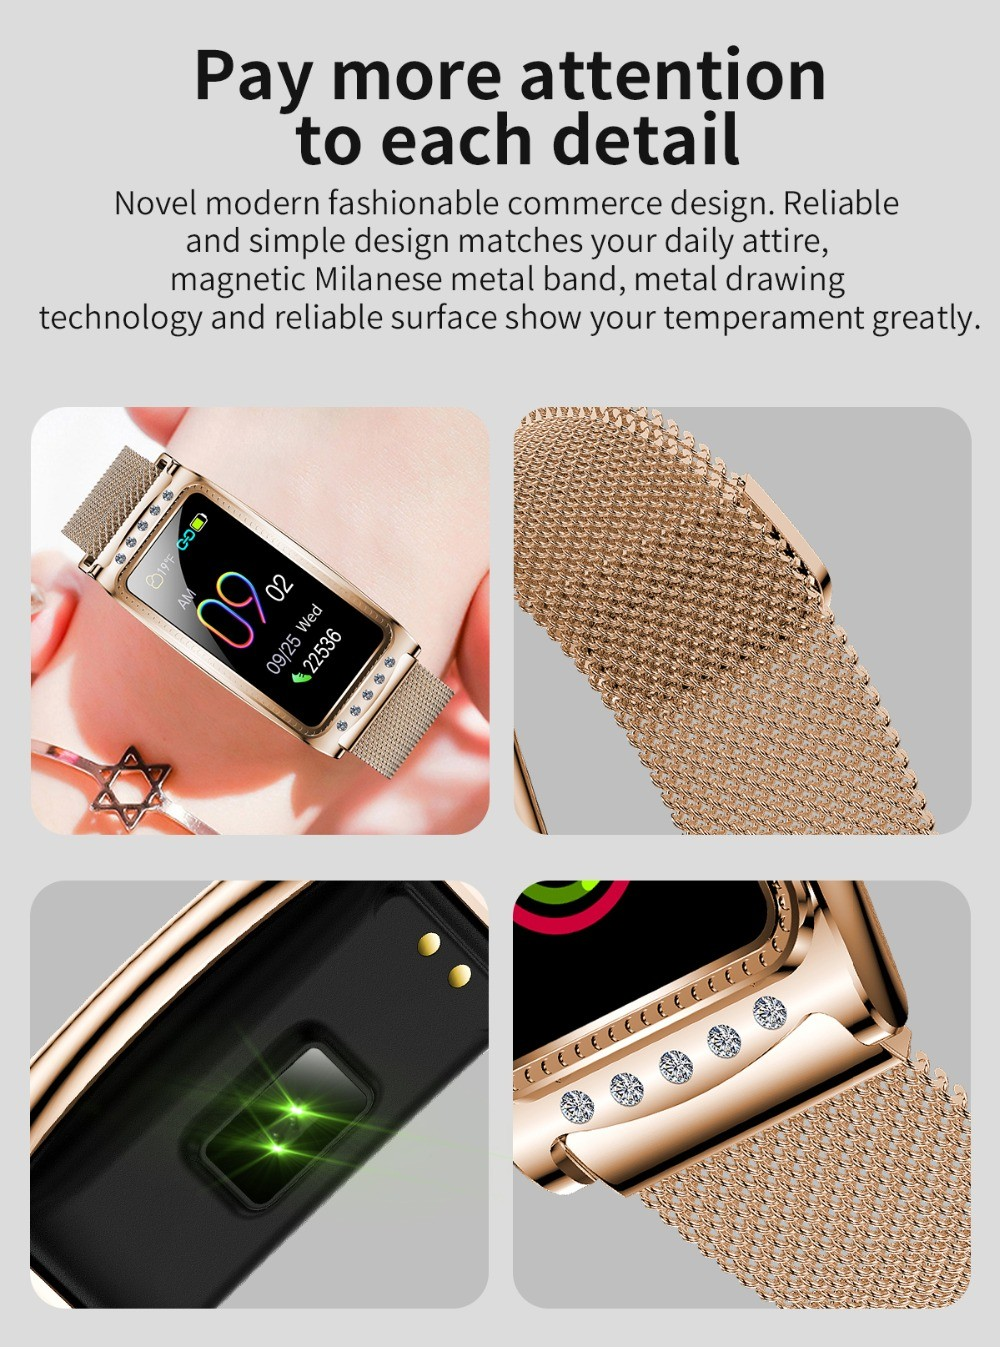 F28 Smart Bracelet Wristband Pay more attention to each detail